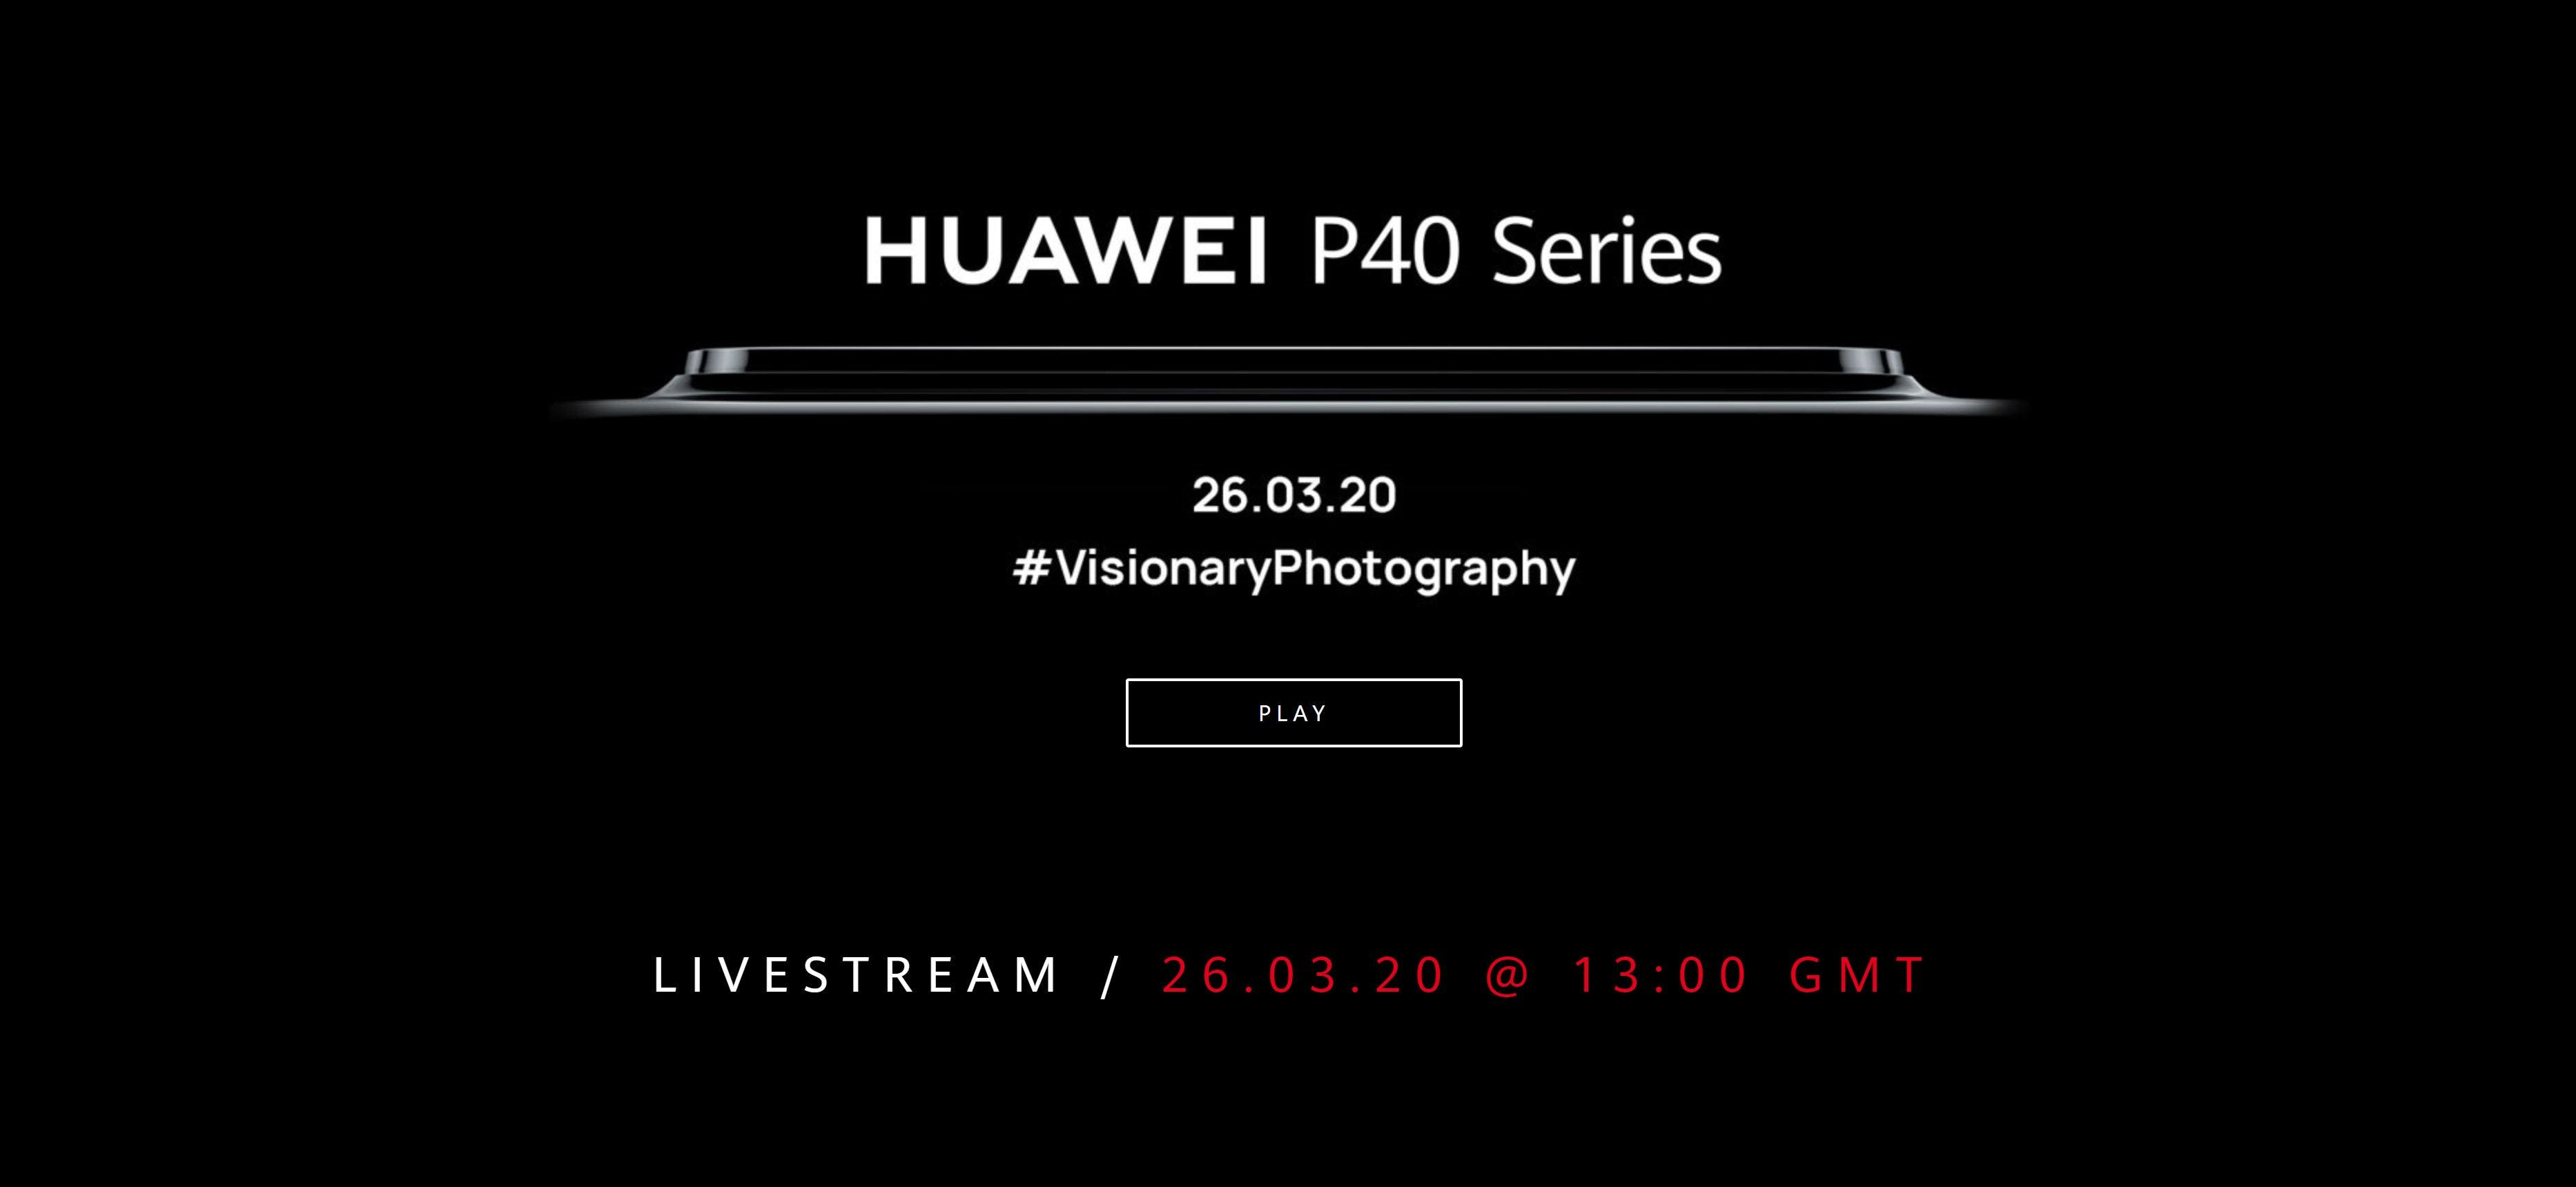 Huawei P40 Series Announcement Will Go Ahead in Spite of Everything